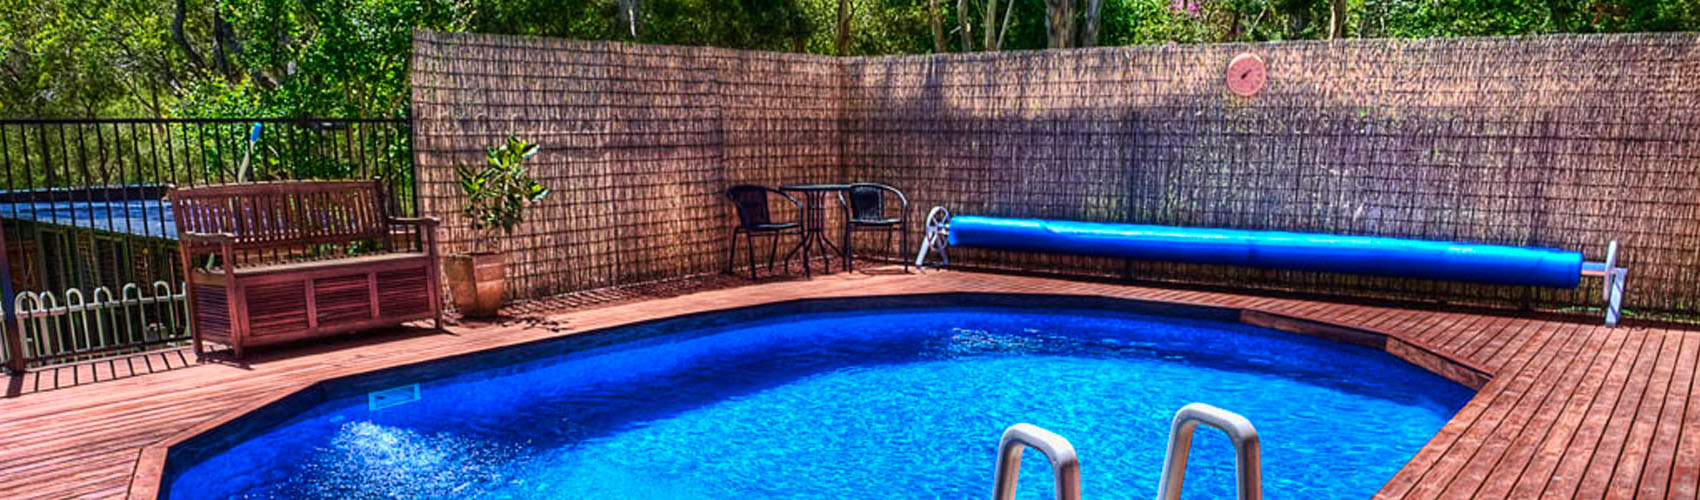 Above Ground Swimming Pool For Sale